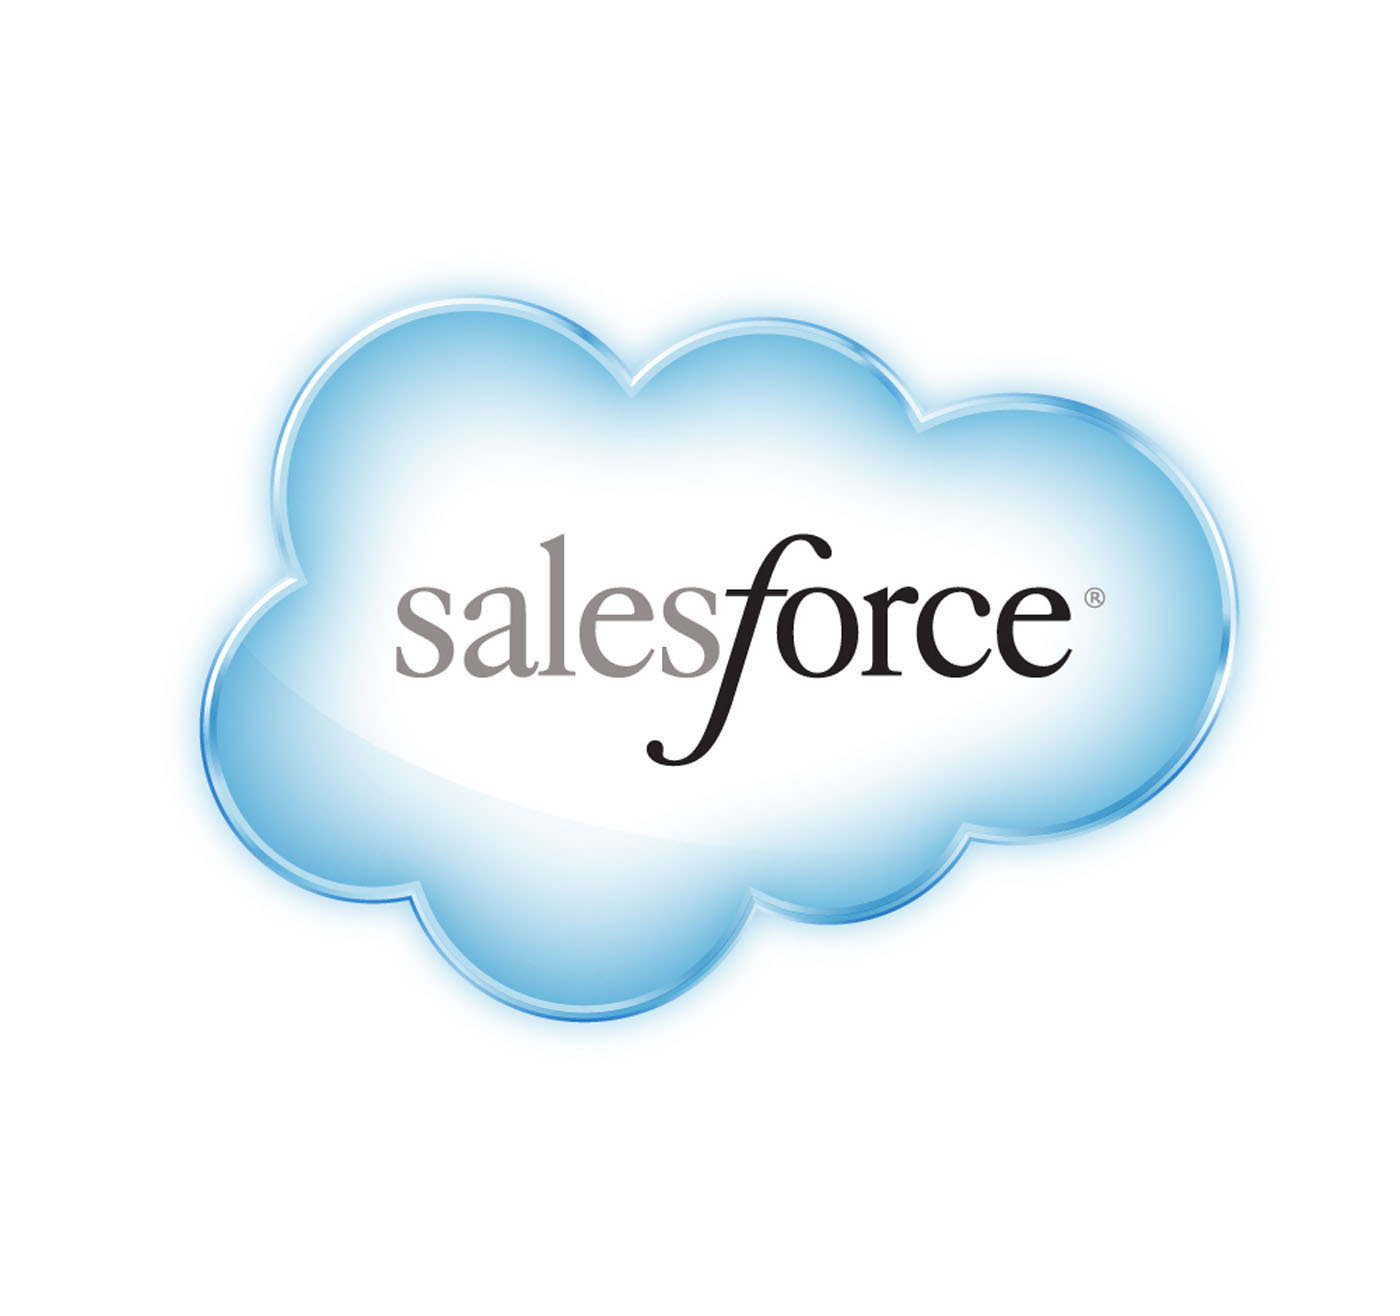 Salesforce.com Launches New Salesforce Chatter Mobile--Helping Employees Make Every Moment Count